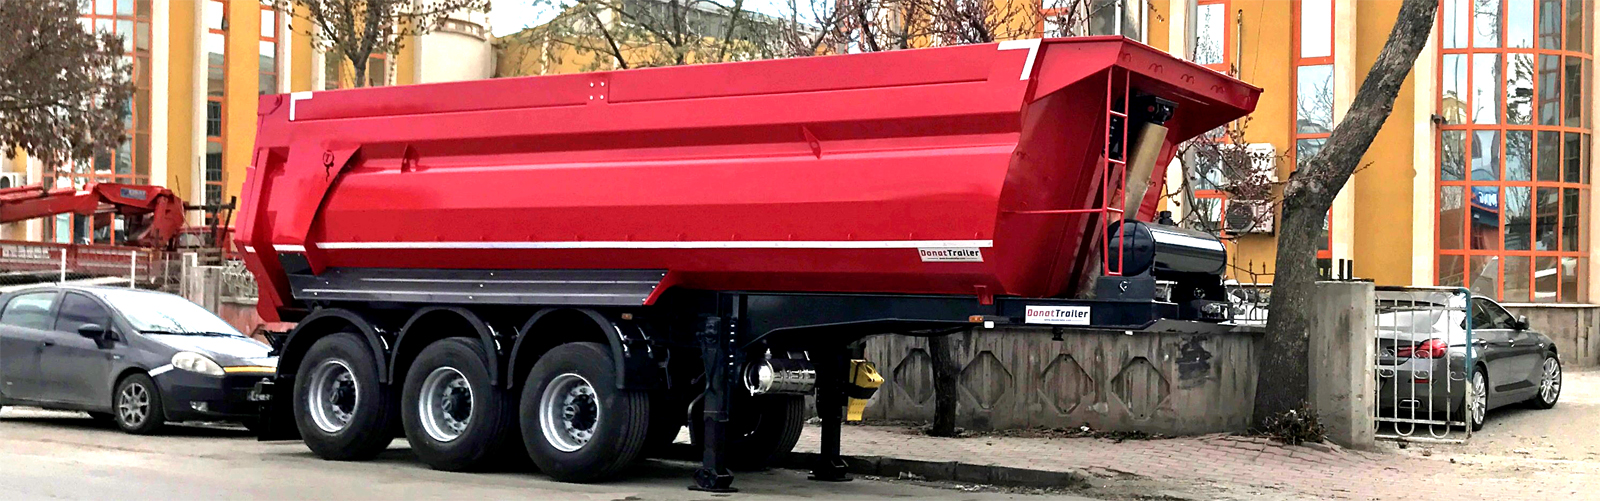 Slider Tipper Semi Trailer